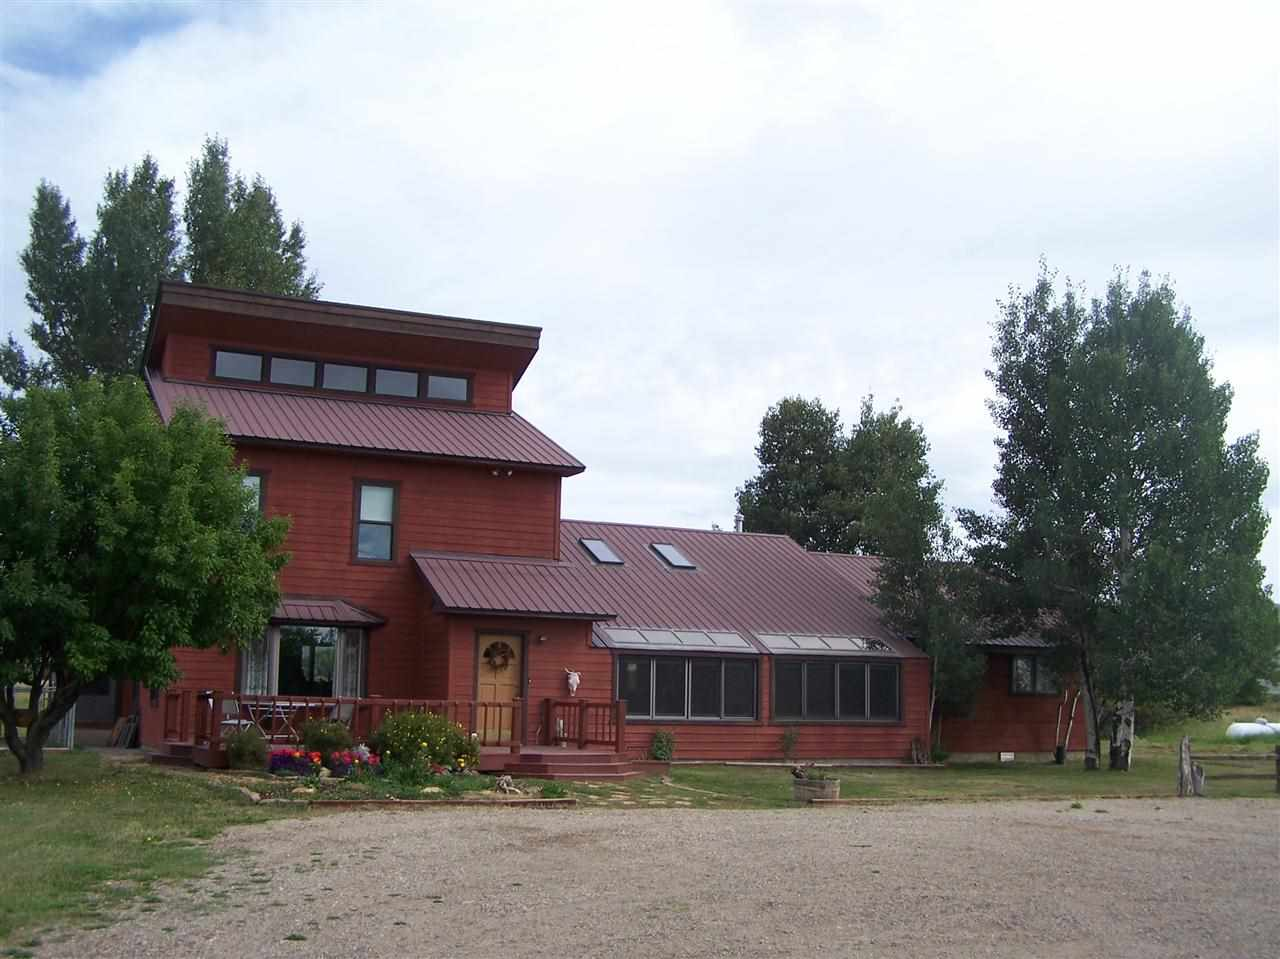 16.6 acres in Gunnison, Colorado